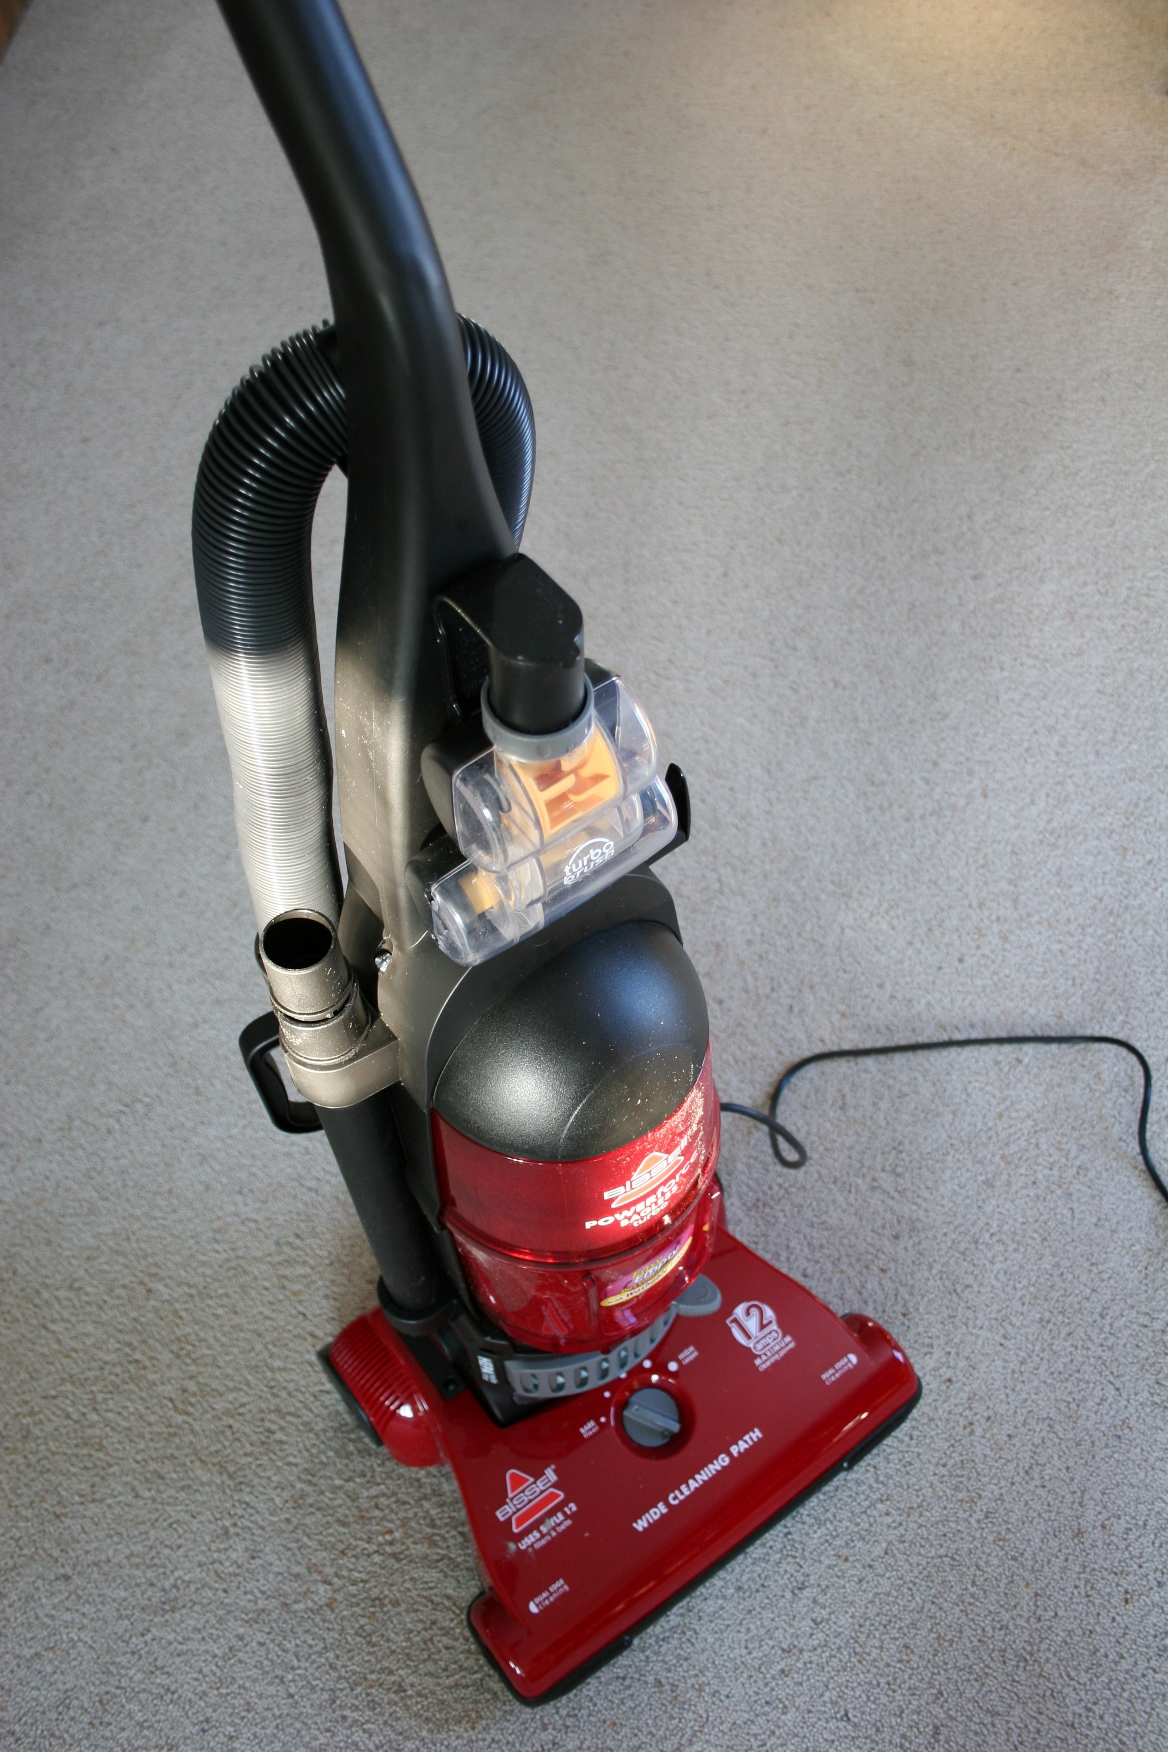 Tales Of Consumer Dishonesty From An Honest Vacuum Cleaner Salesman